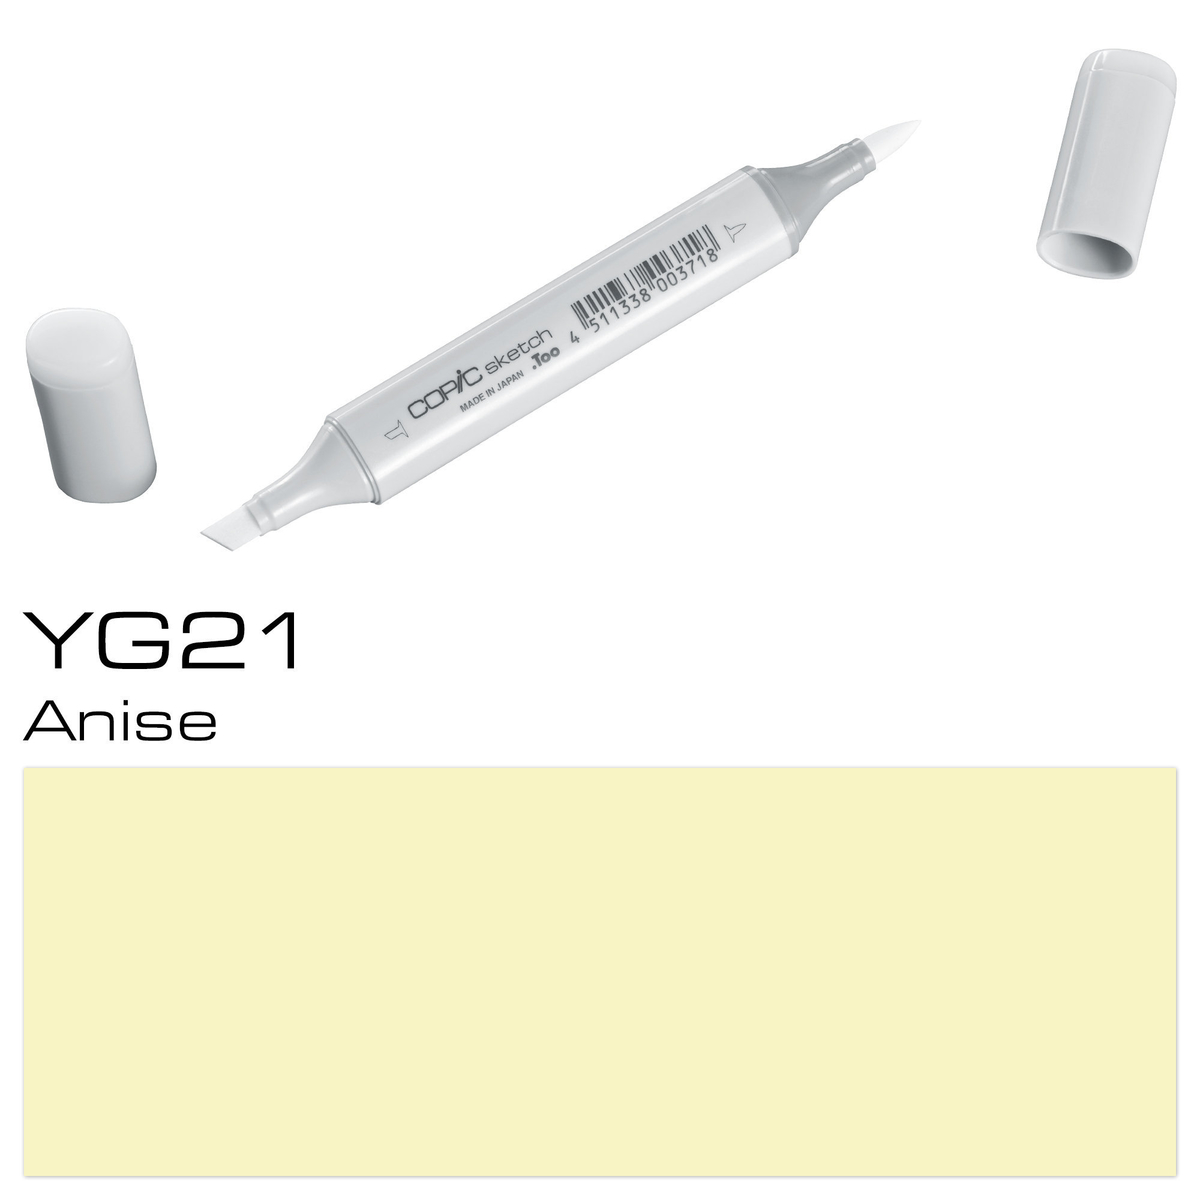 Copic Sketch YG 21 anise